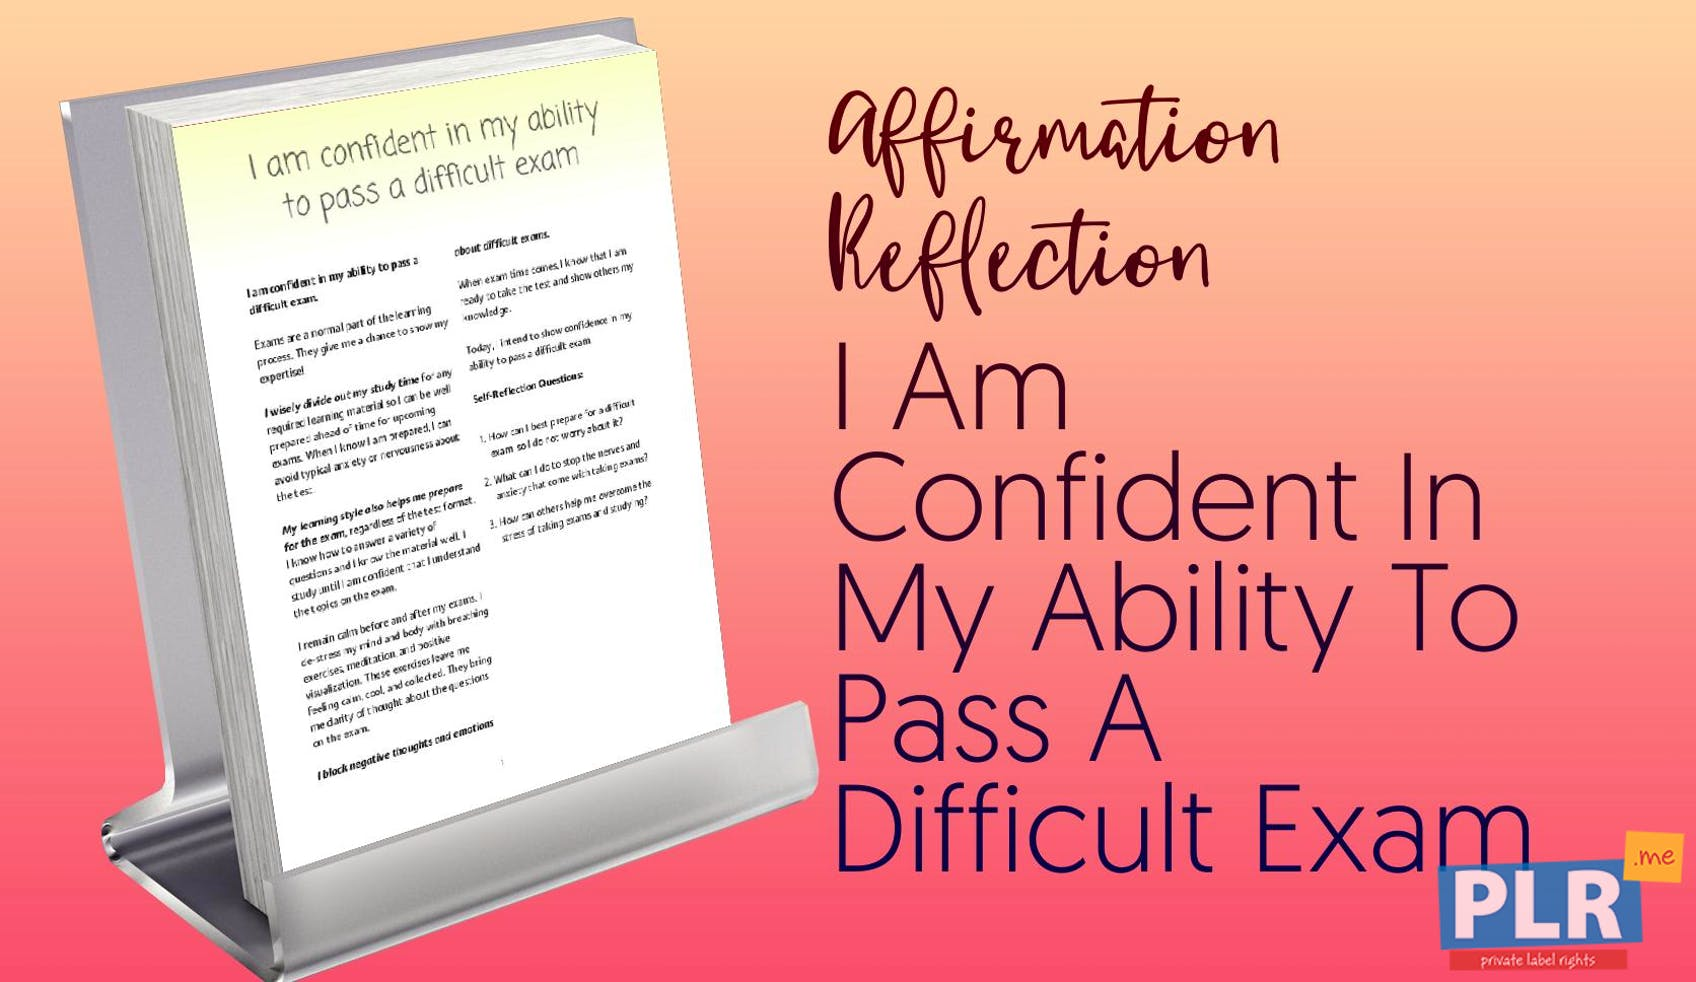 Plr affirmation reflections i am confident in my ability to pass a i am confident in my ability to pass a difficult exam altavistaventures Gallery